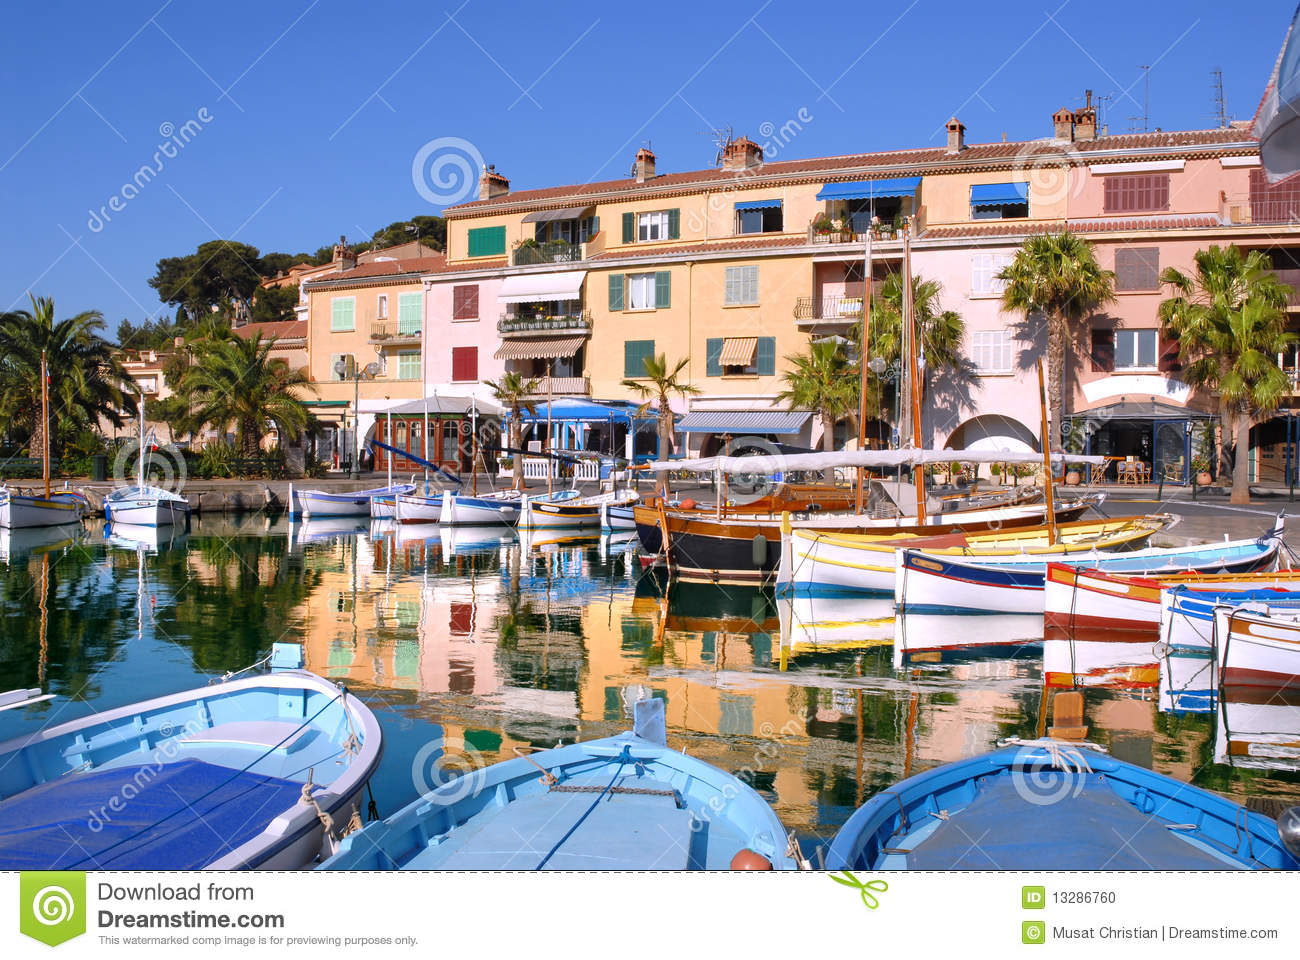 Port of Sanary in France